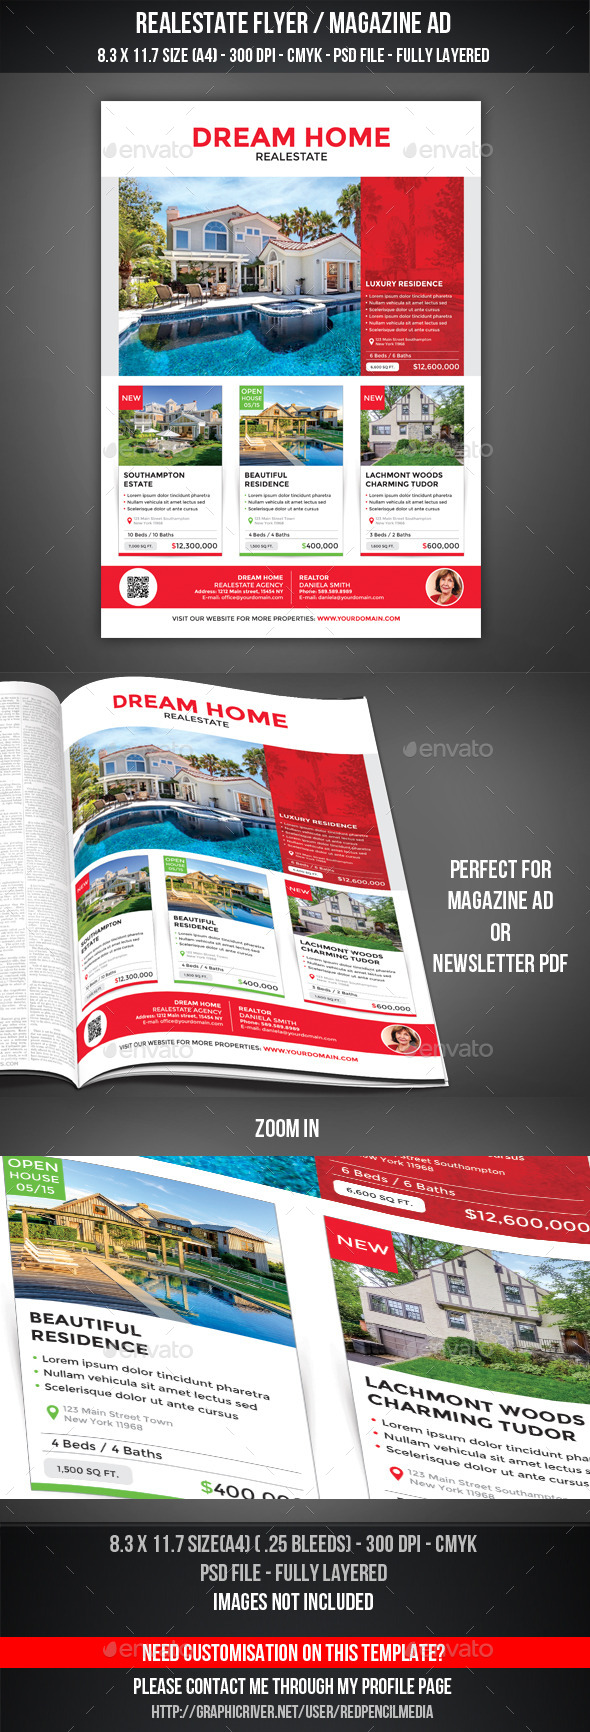 GraphicRiver Realestate Flyer Magazine AD 11201481